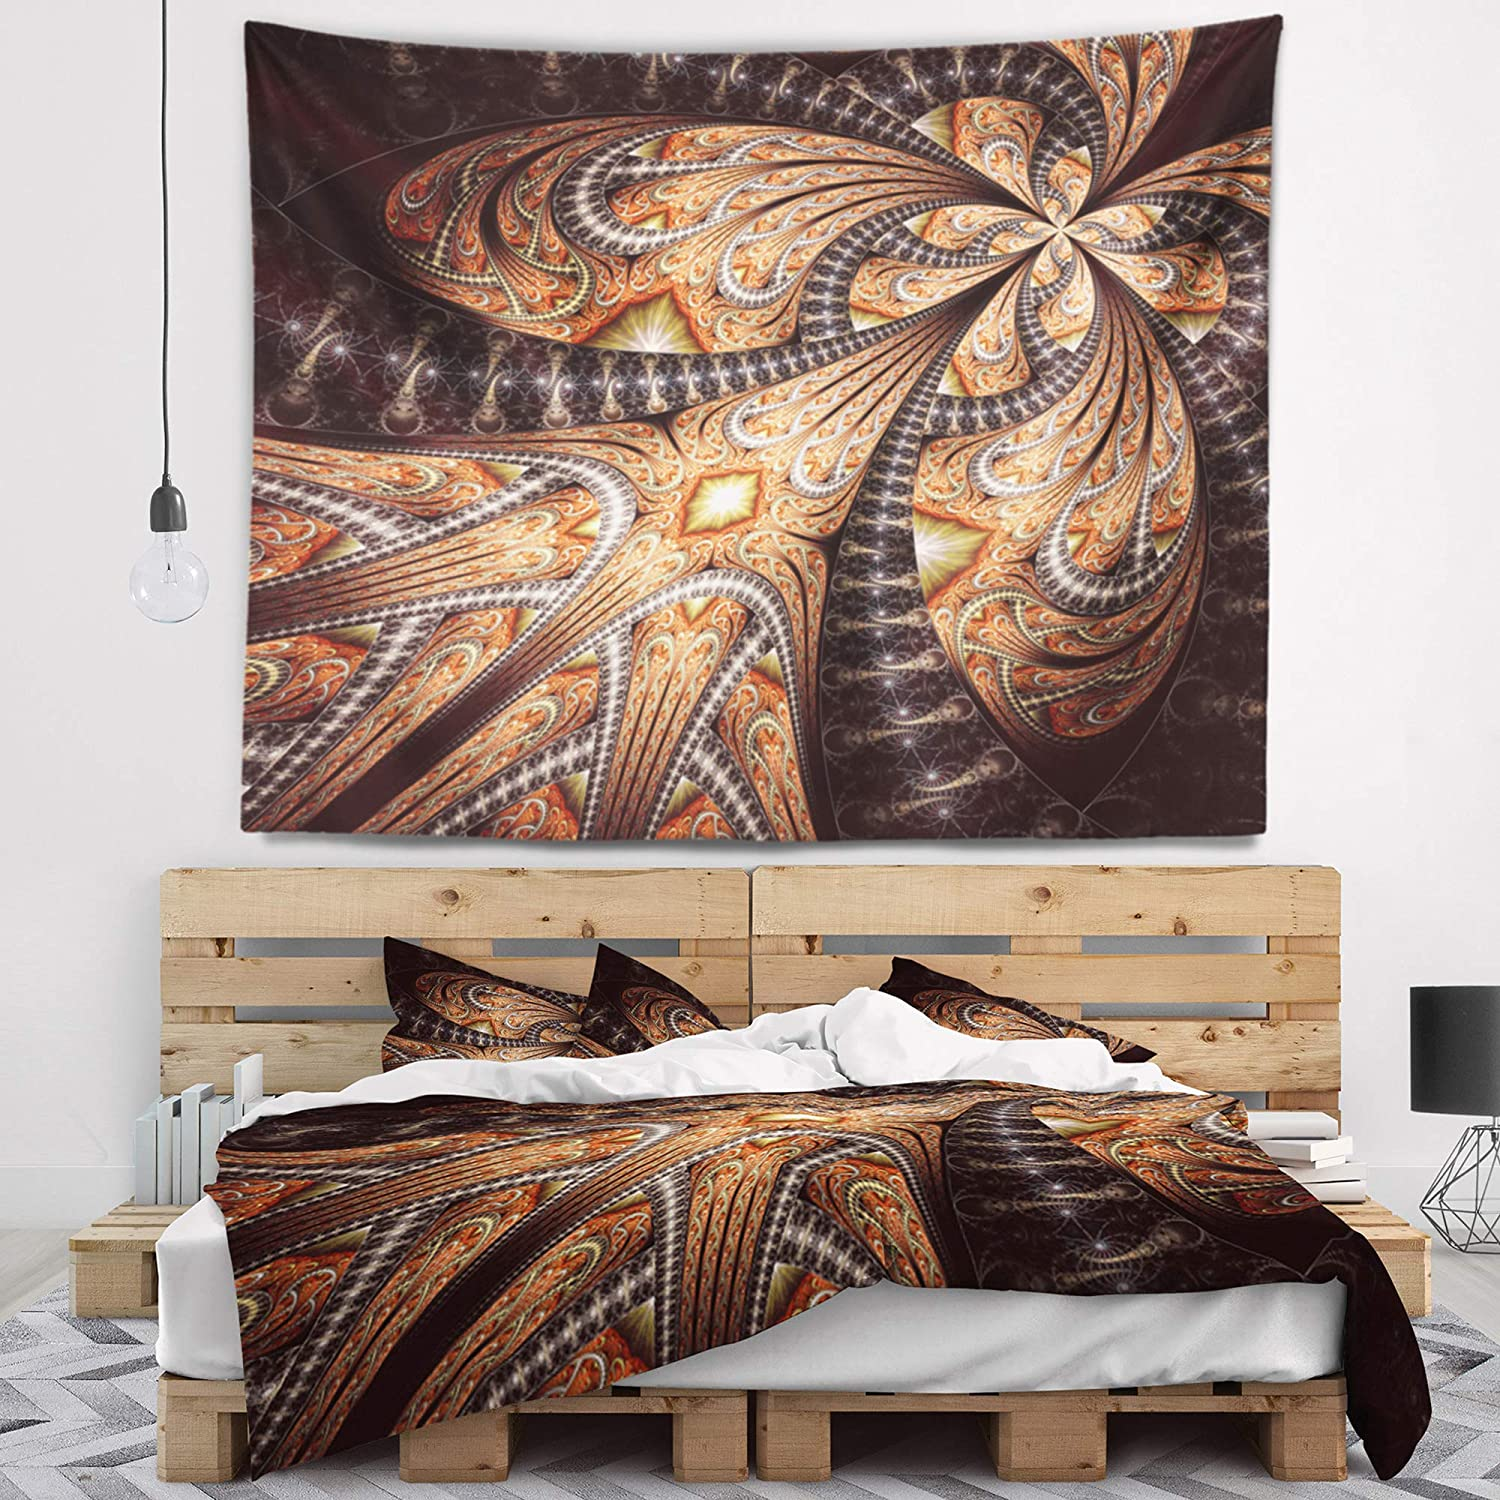 Designart Tap16495 60 50 Brown Symmetrical Fractal Flower Abstract Blanket Décor Art For Home And Office Wall Tapestry Large 60 X 50